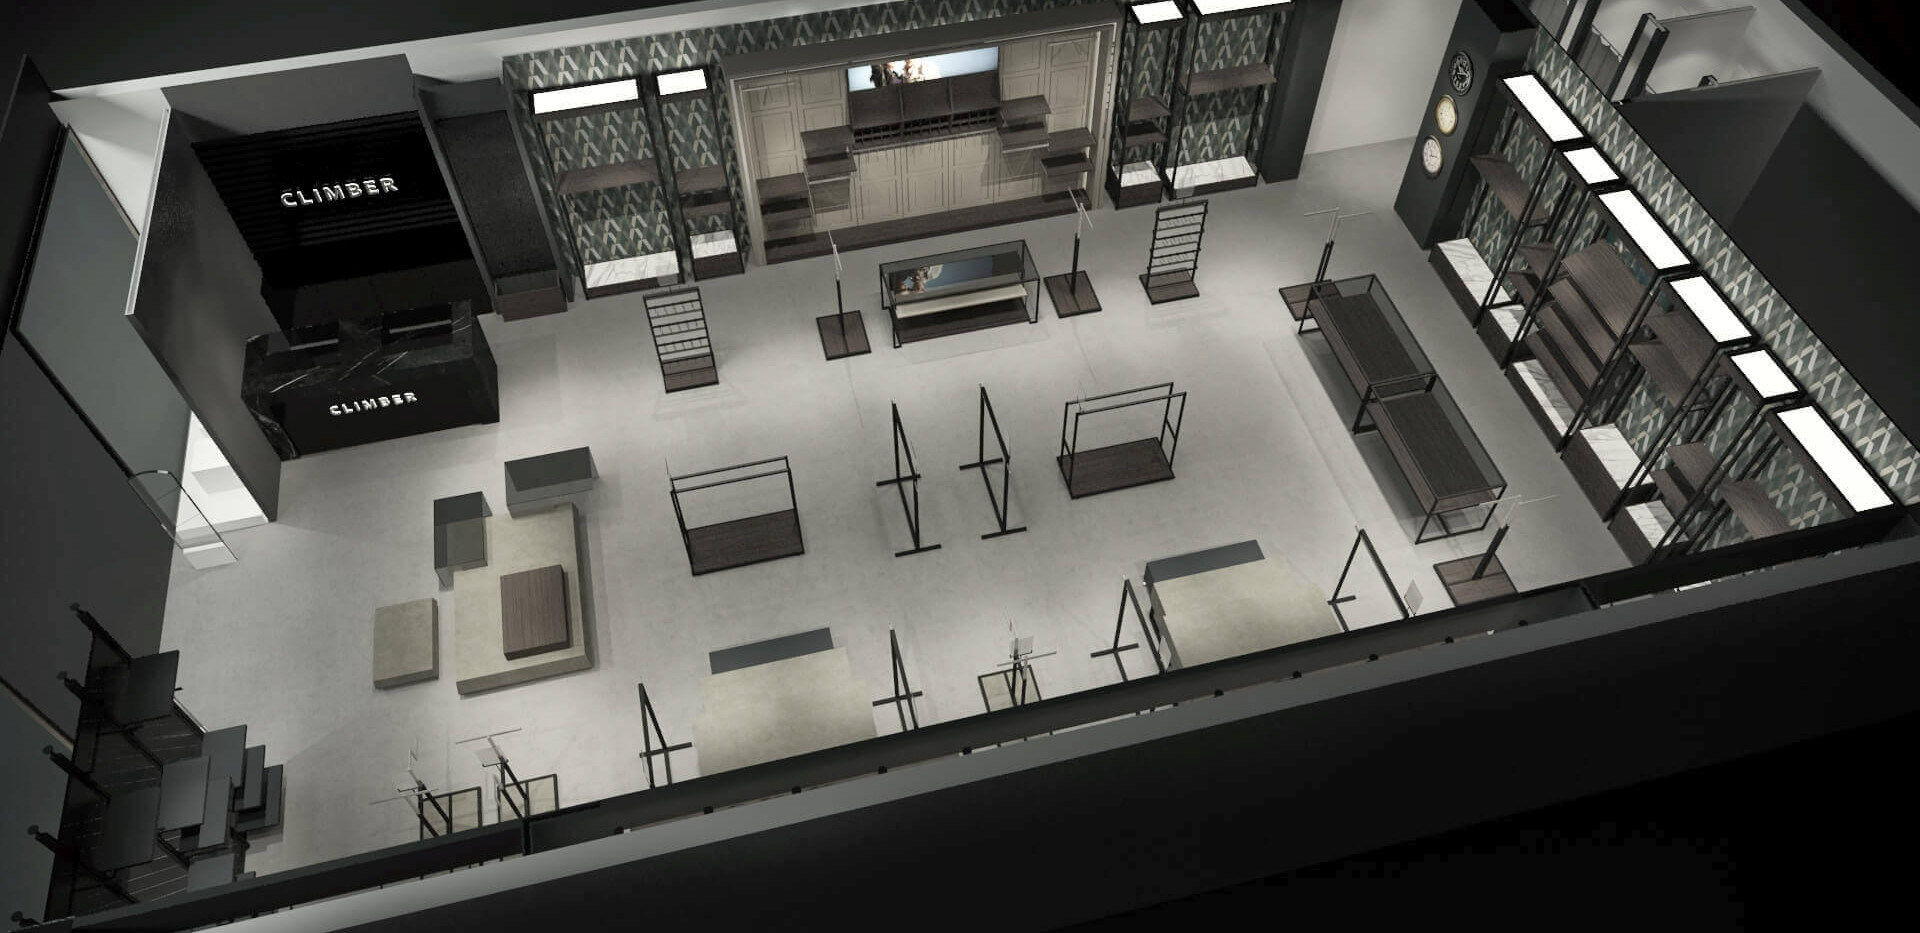 Climber - Fashion Store Shop Design-6.jp